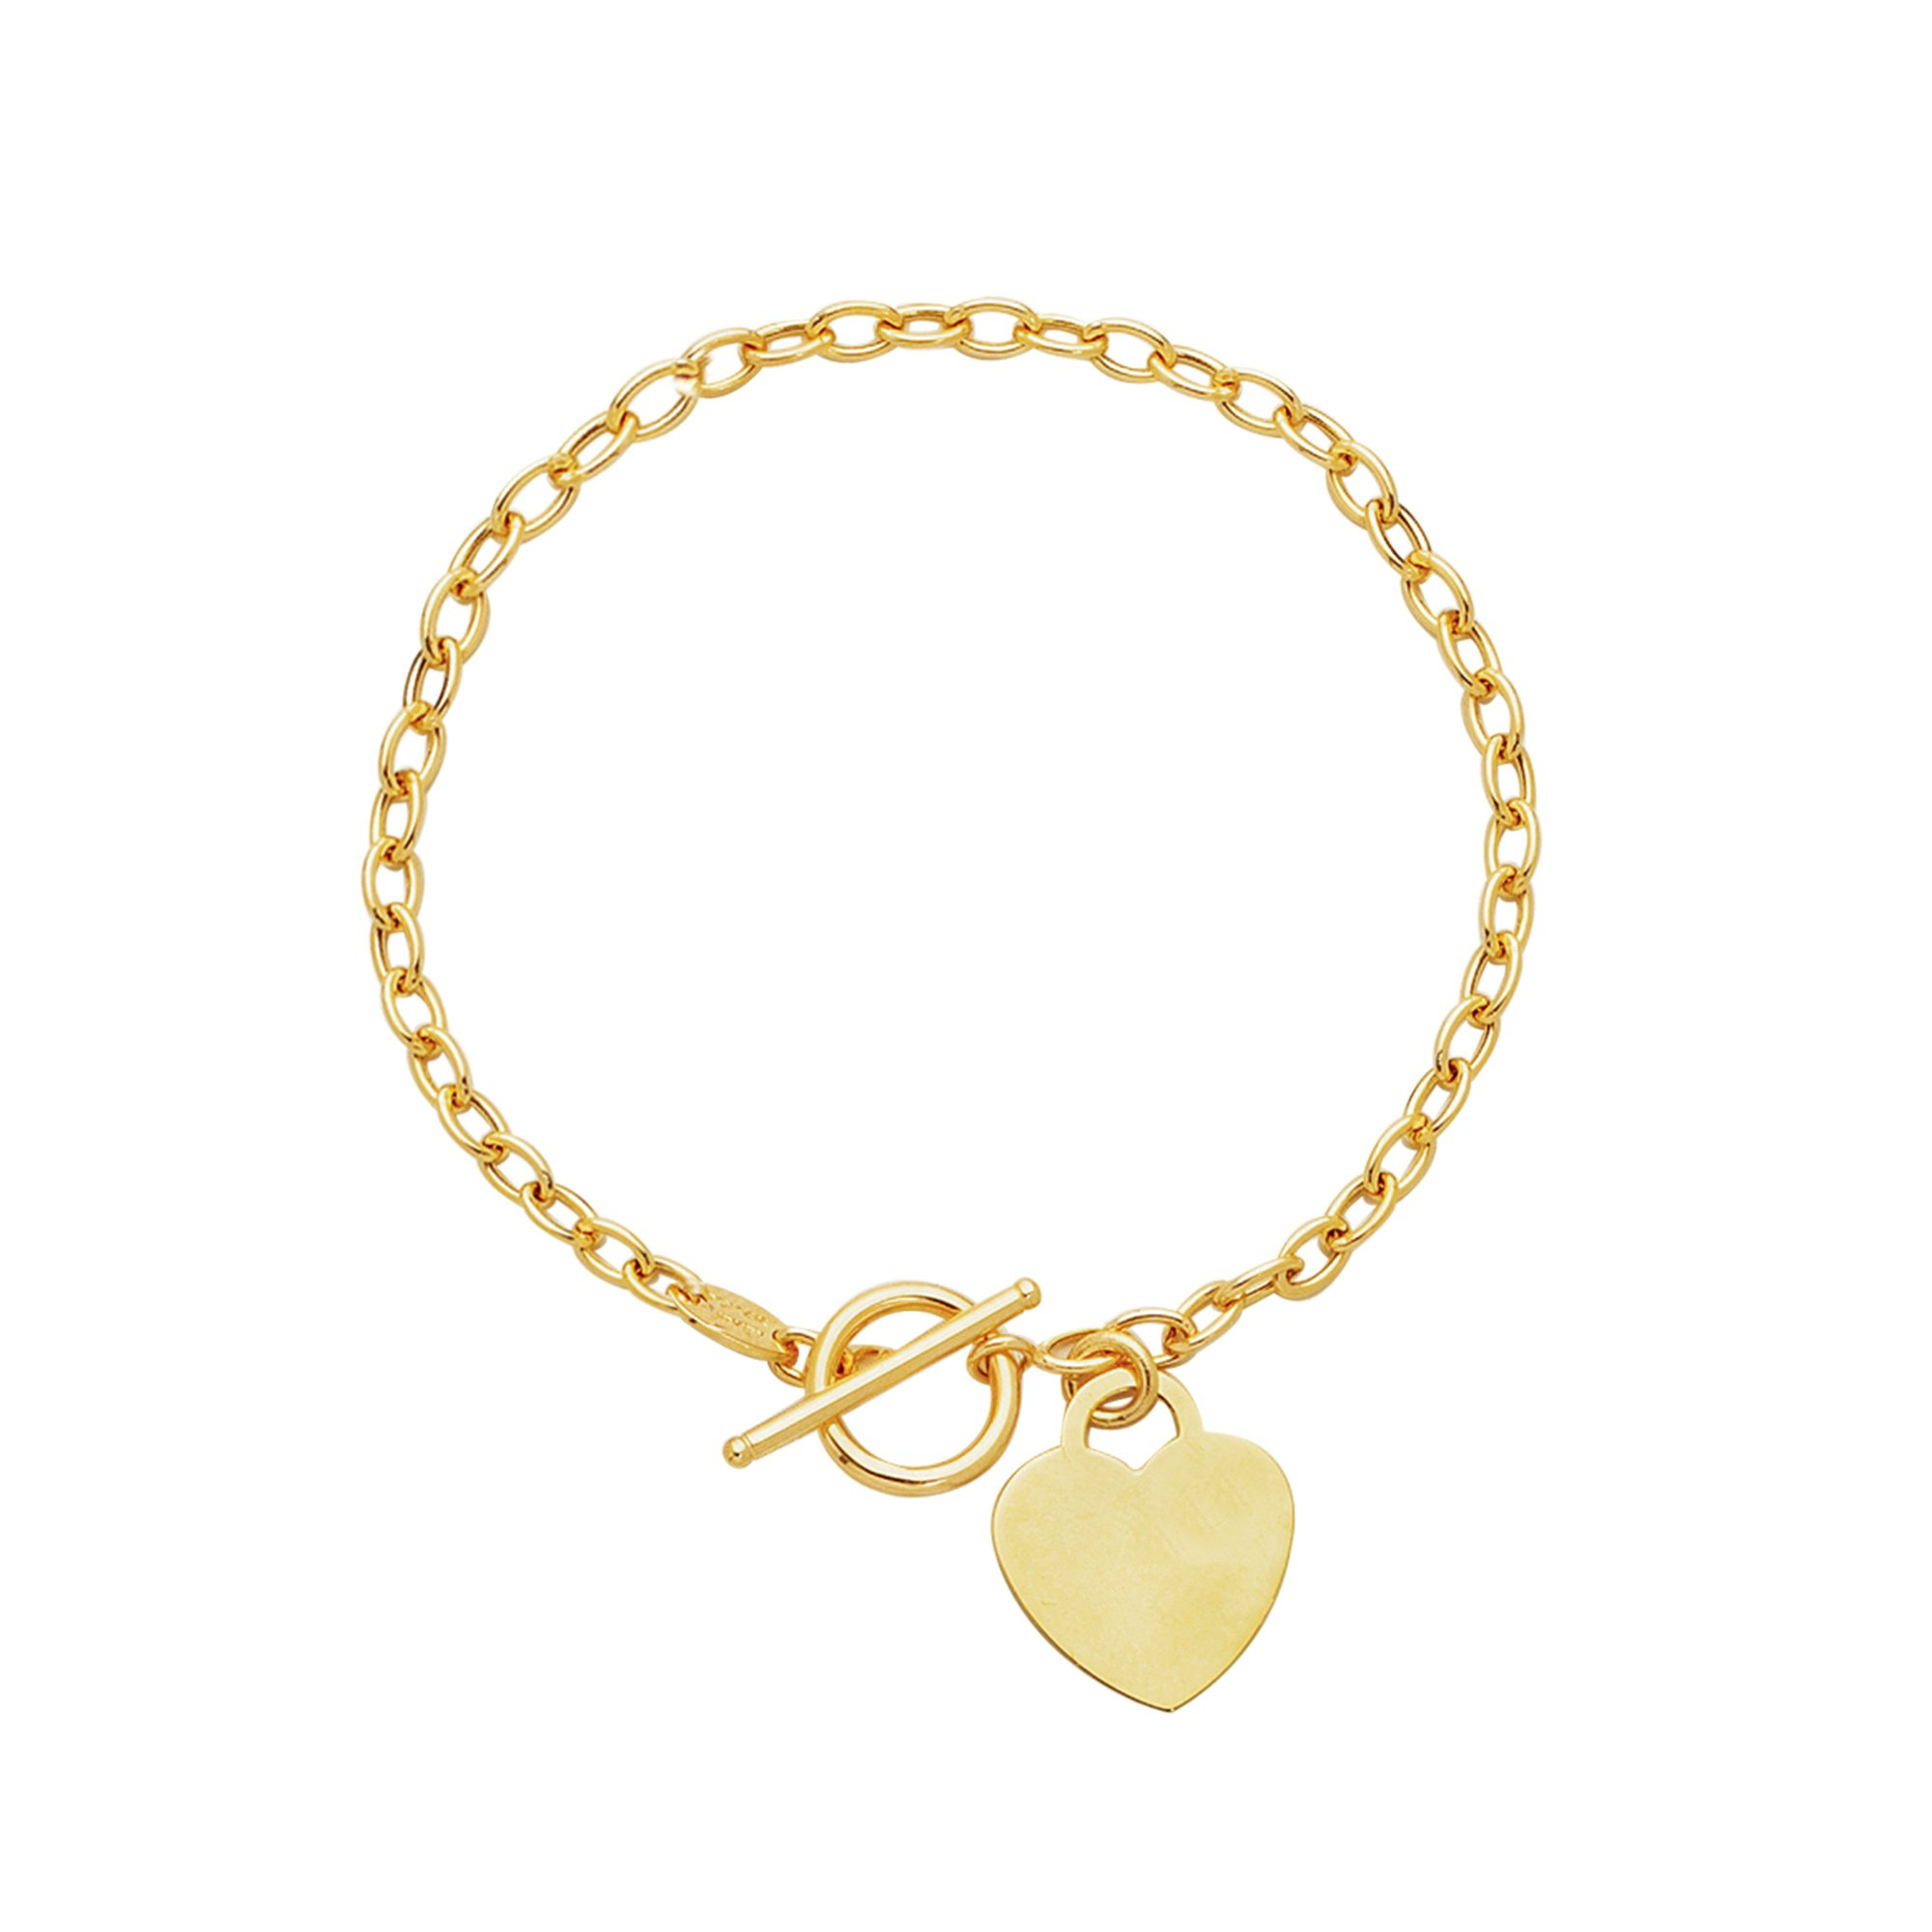 MCS Jewelry 14 Karat White OR Yellow Gold Heart Dangle Charm Bracelet 7.5'' (yellow-gold)